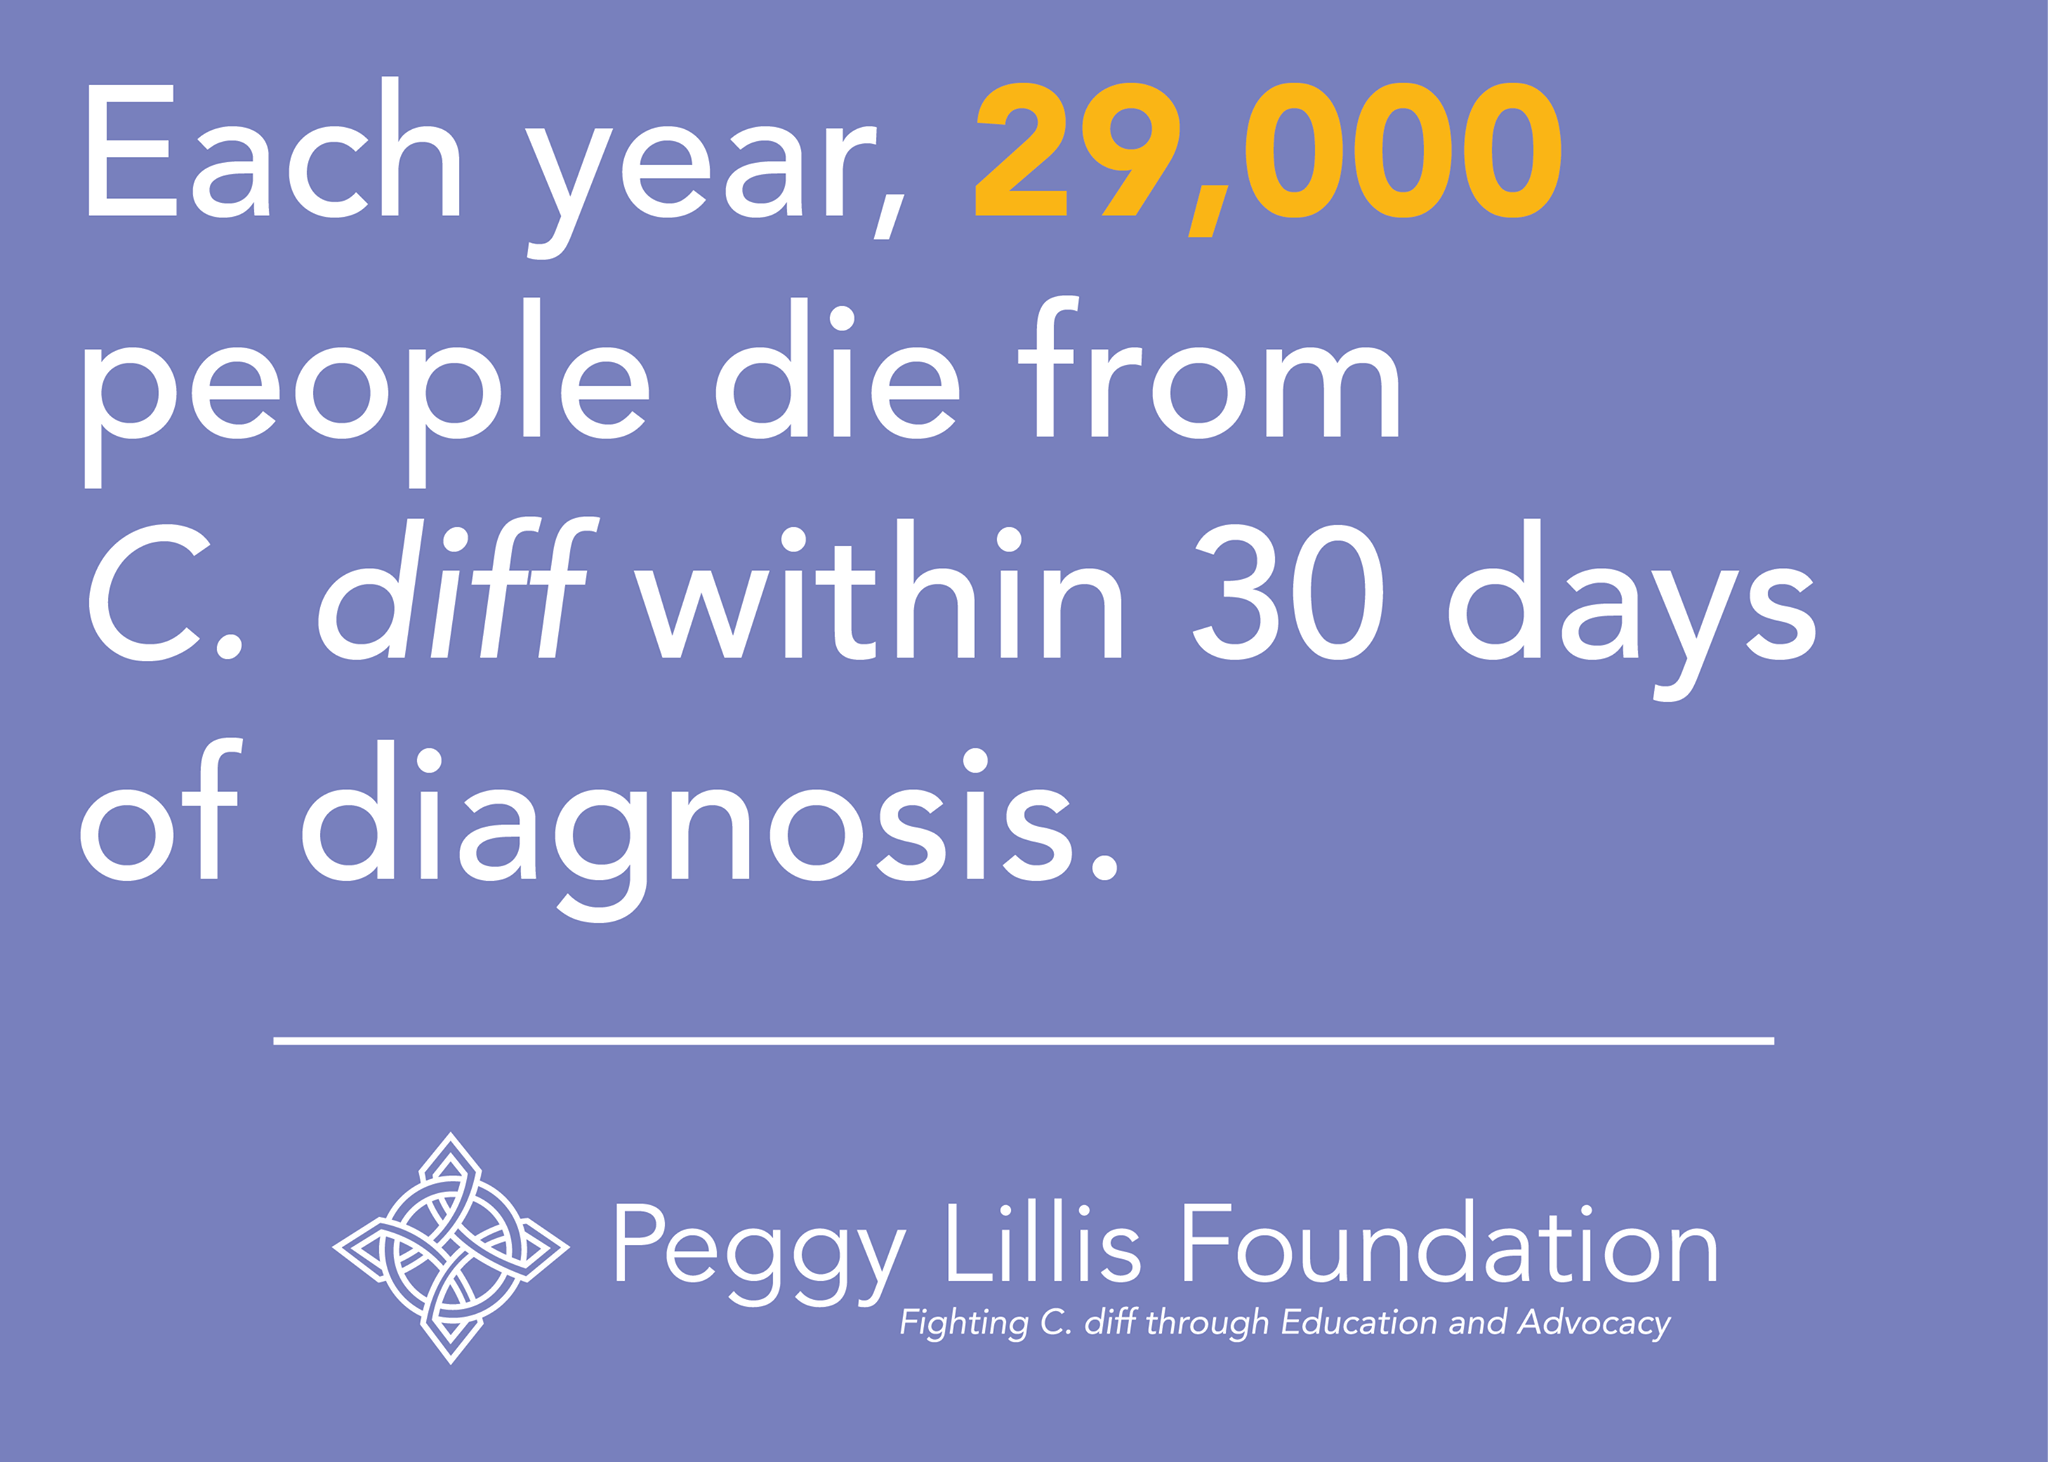 C. diff statistic by Peggy Lillis Foundation